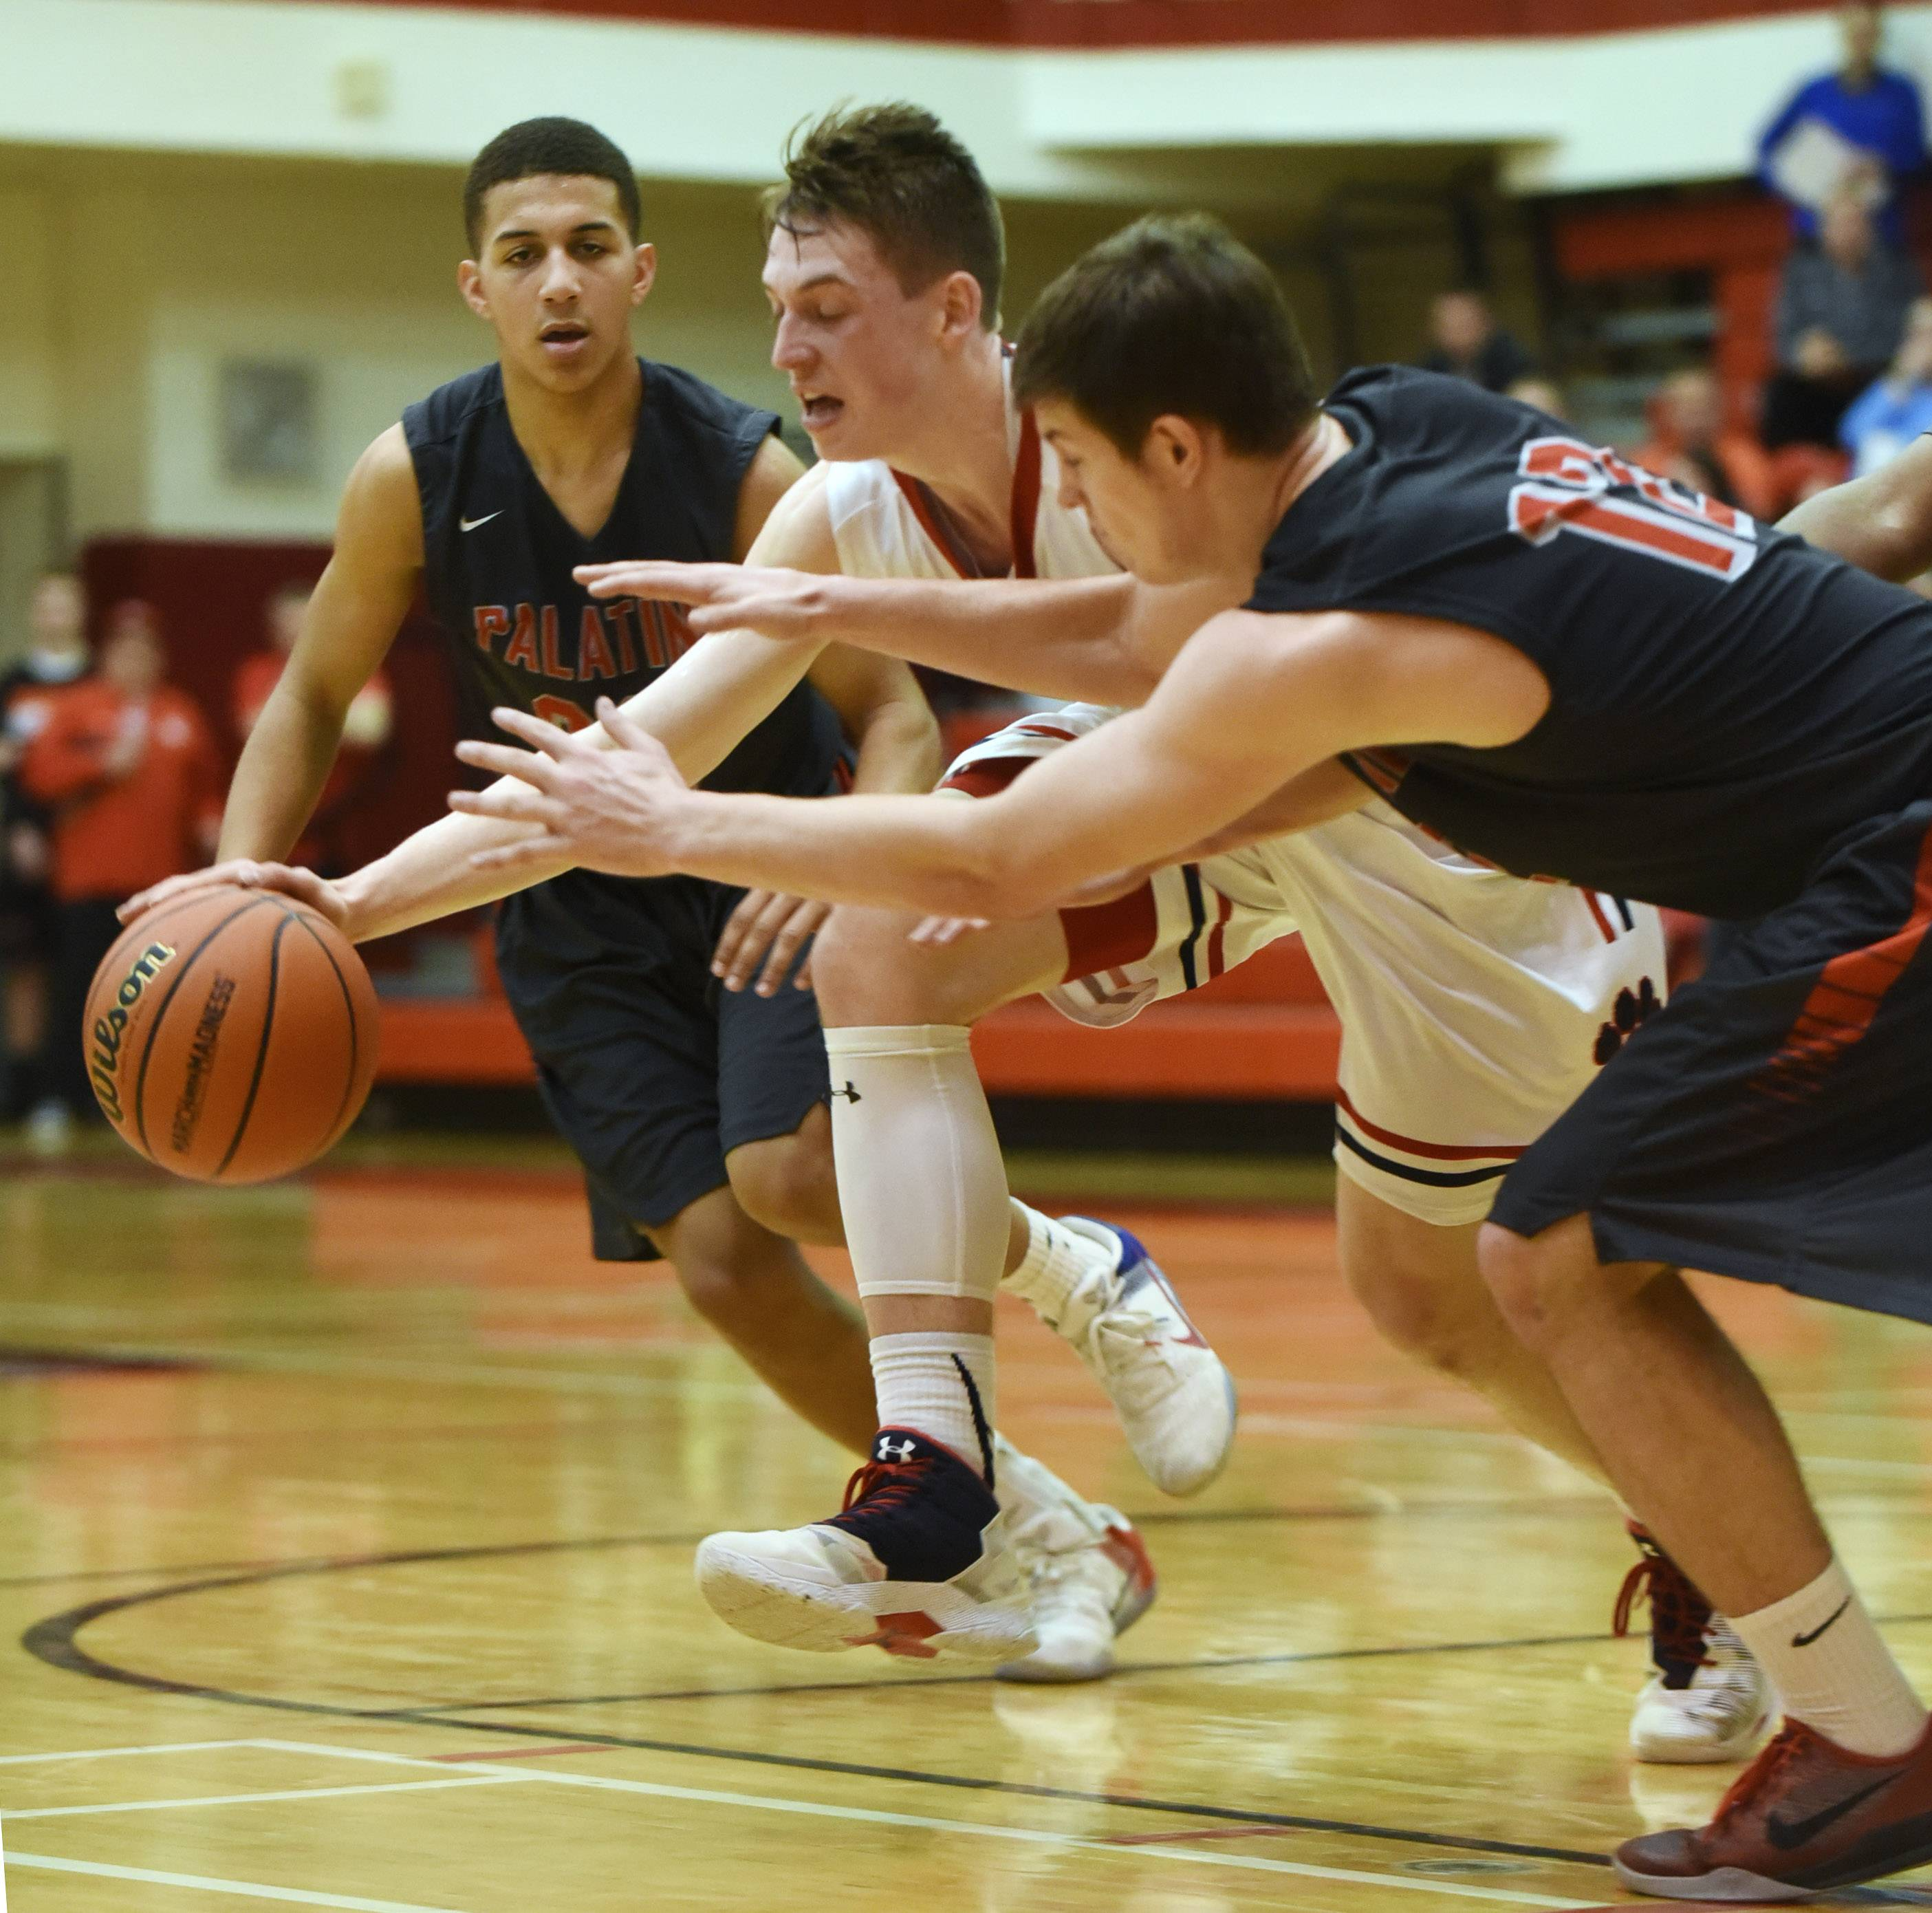 Conant's Jimmy Sotos, right, tries to maintain possession of the ball while making a move between Palatine's Lamon Berry, left, and Johnny O'Shea during the Class 4A regional semifinal at Palatine Tuesday